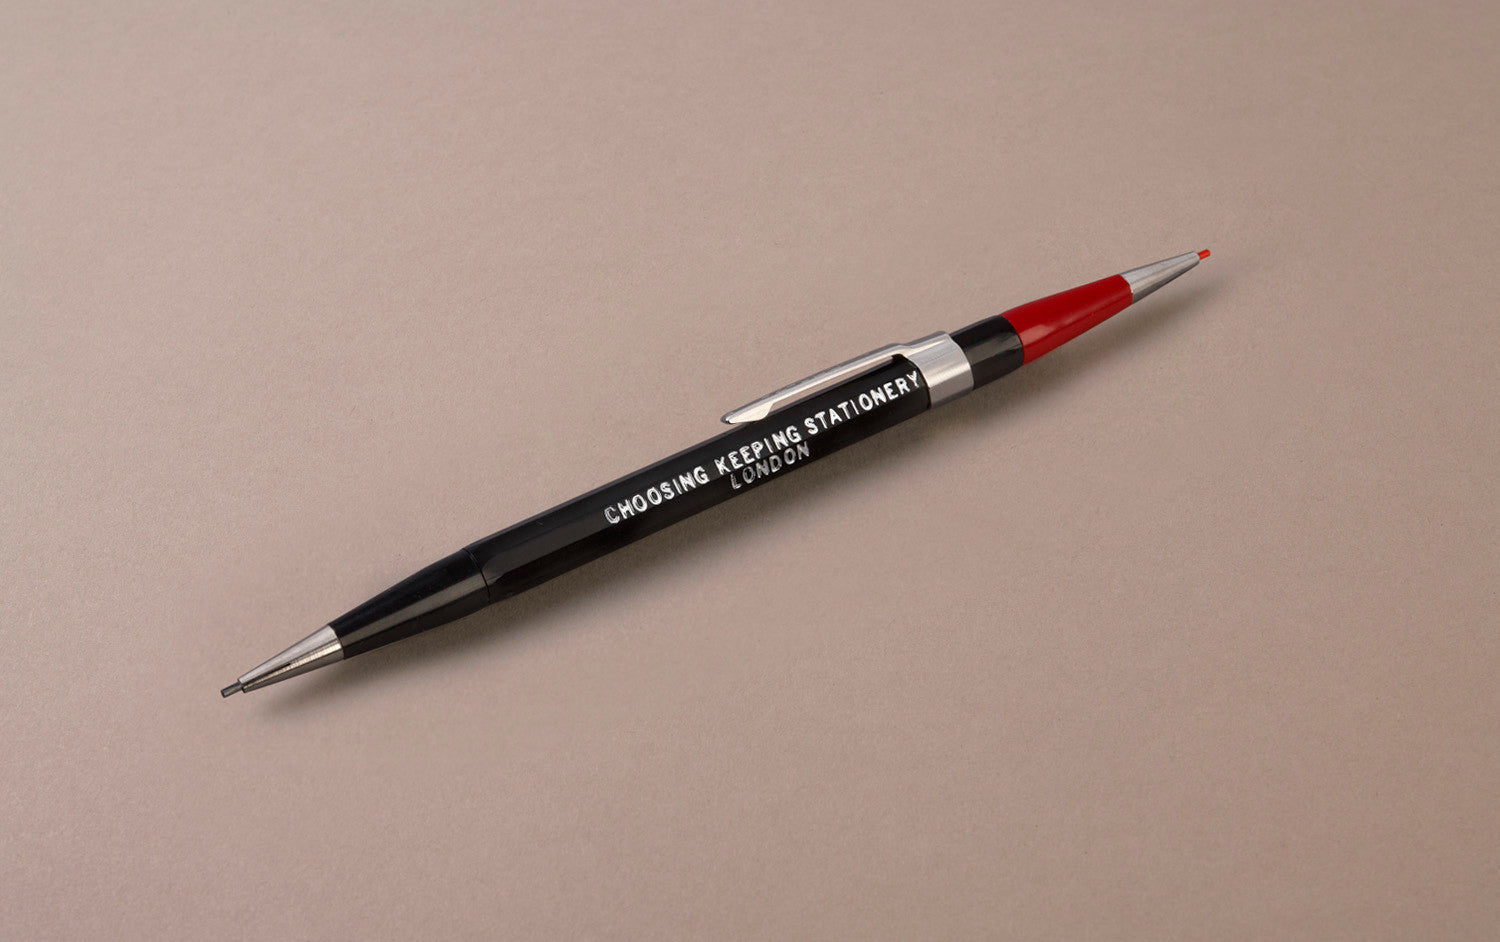 Black Choosing Keeping Twin 1.1mm Mechanical Pencil - Red and Graphite